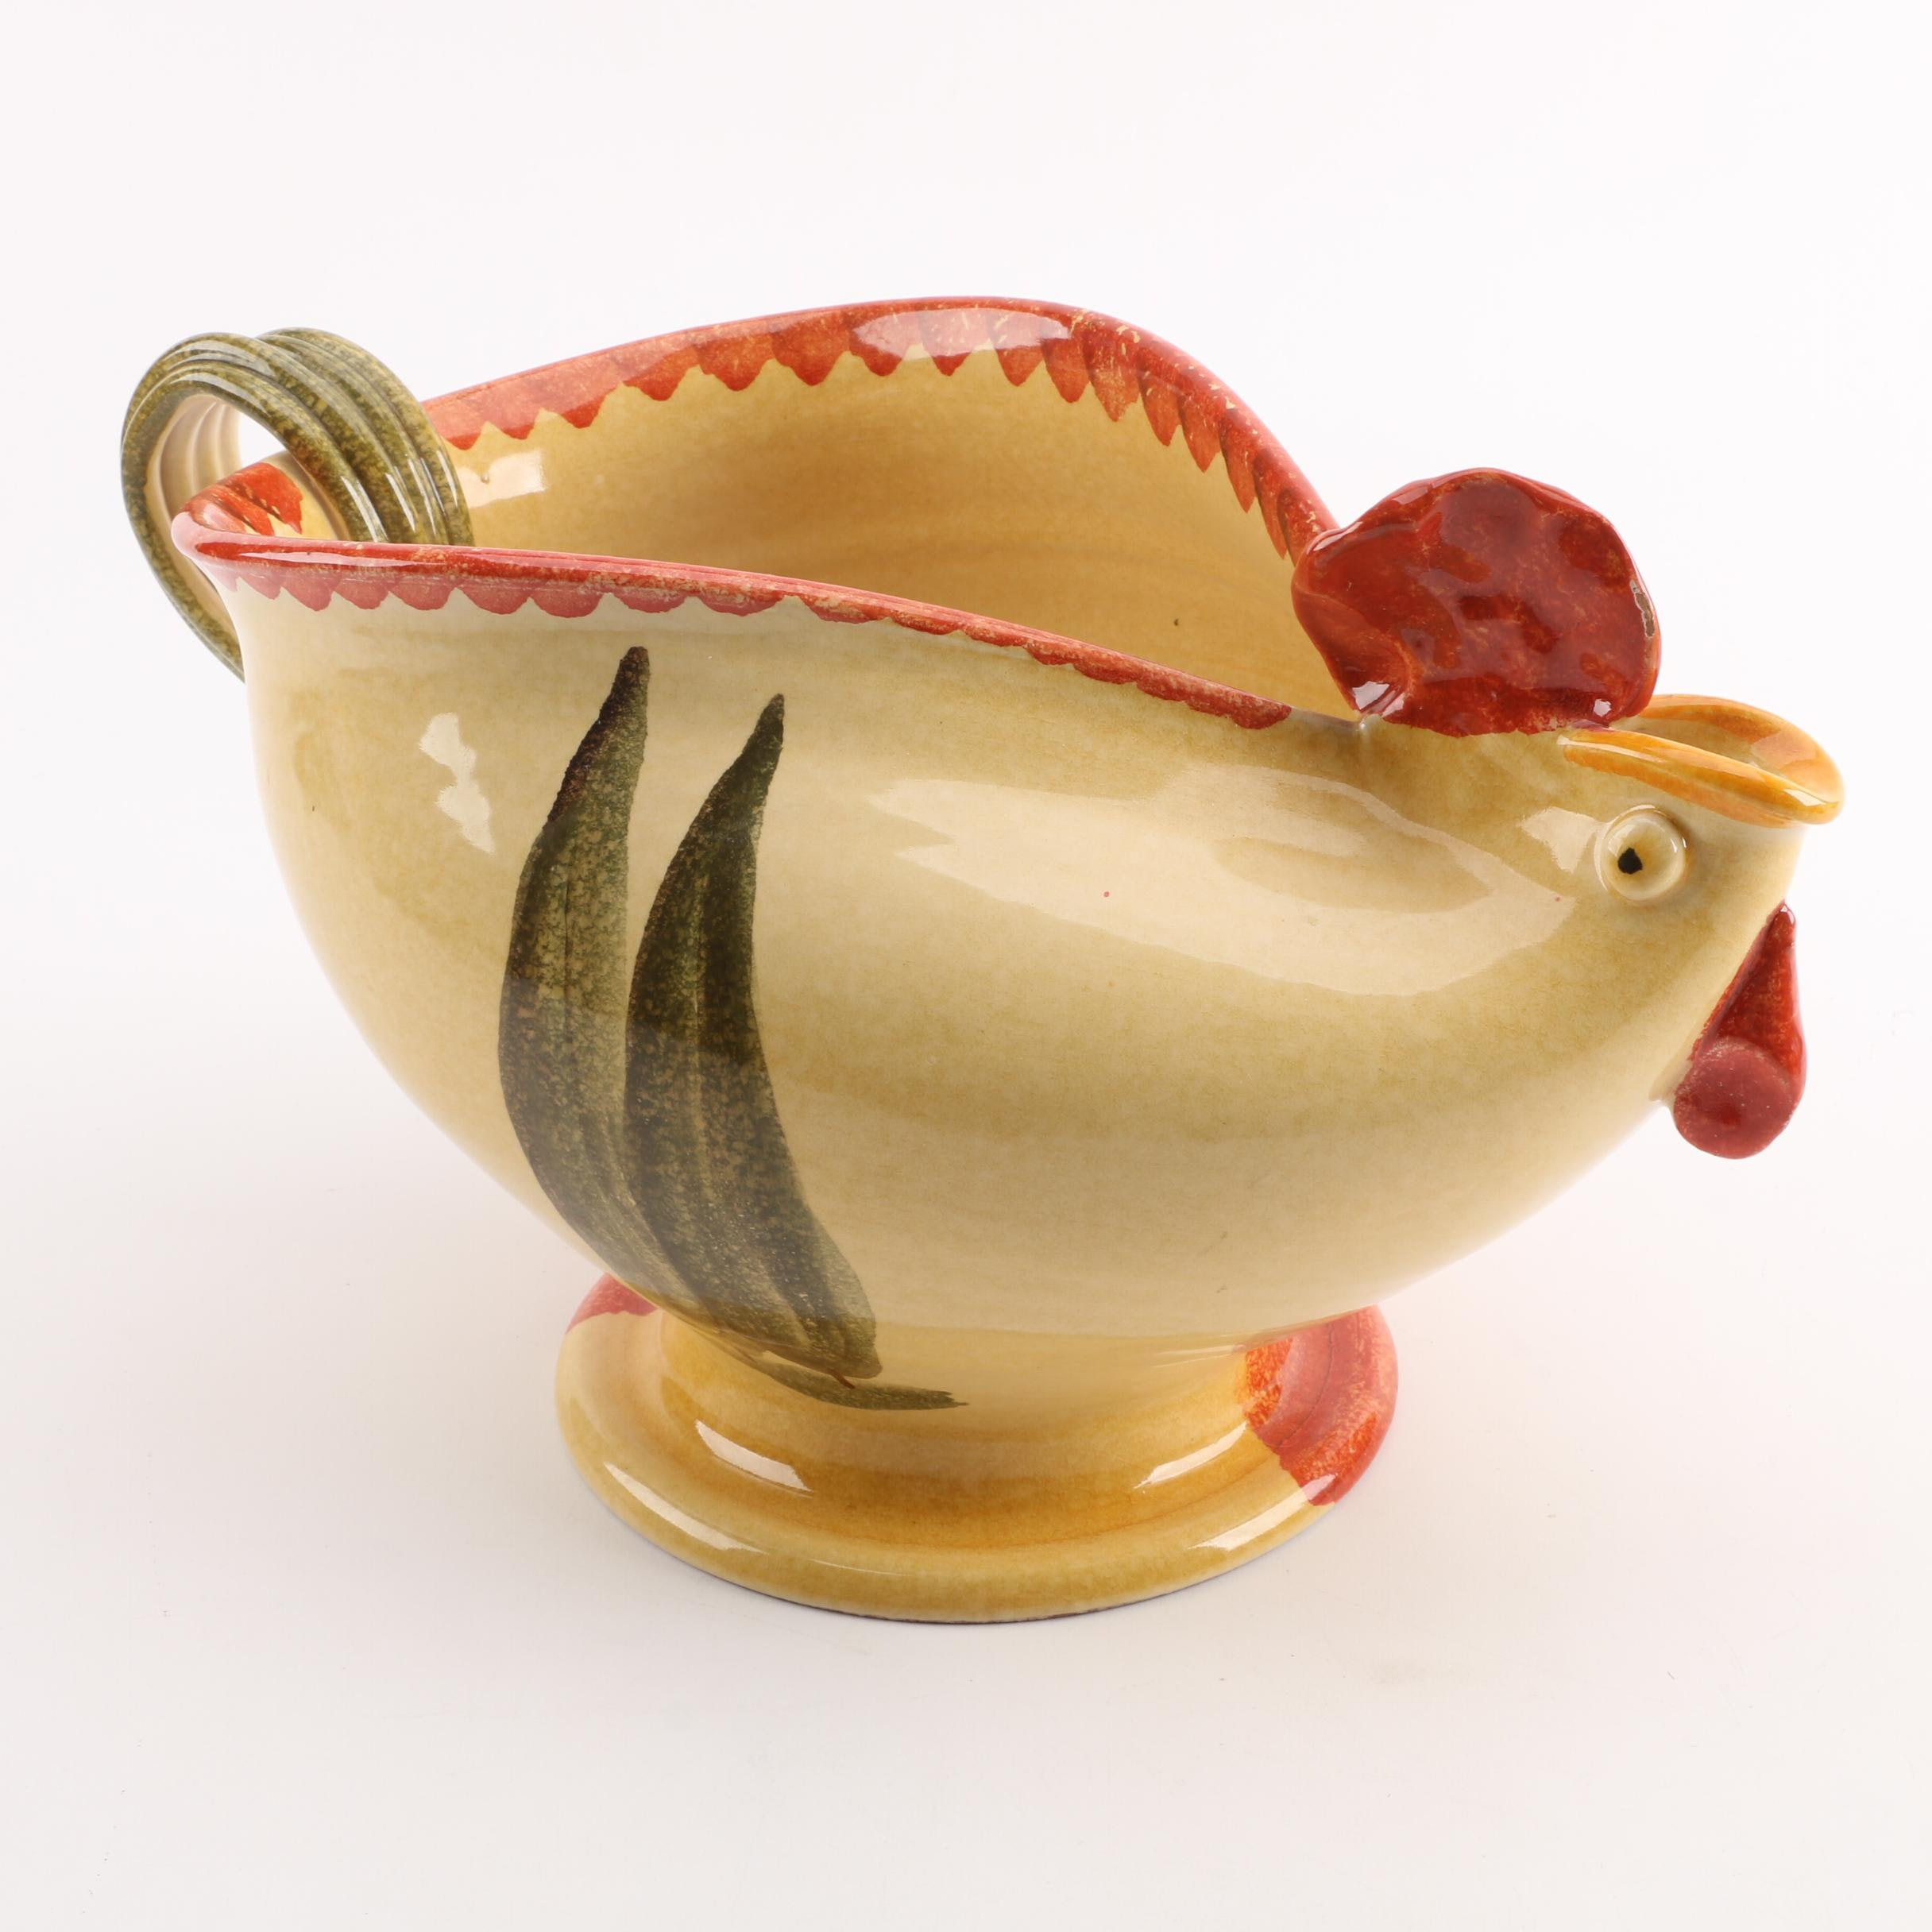 Hand-Painted Italian Ceramic Rooster Pitcher